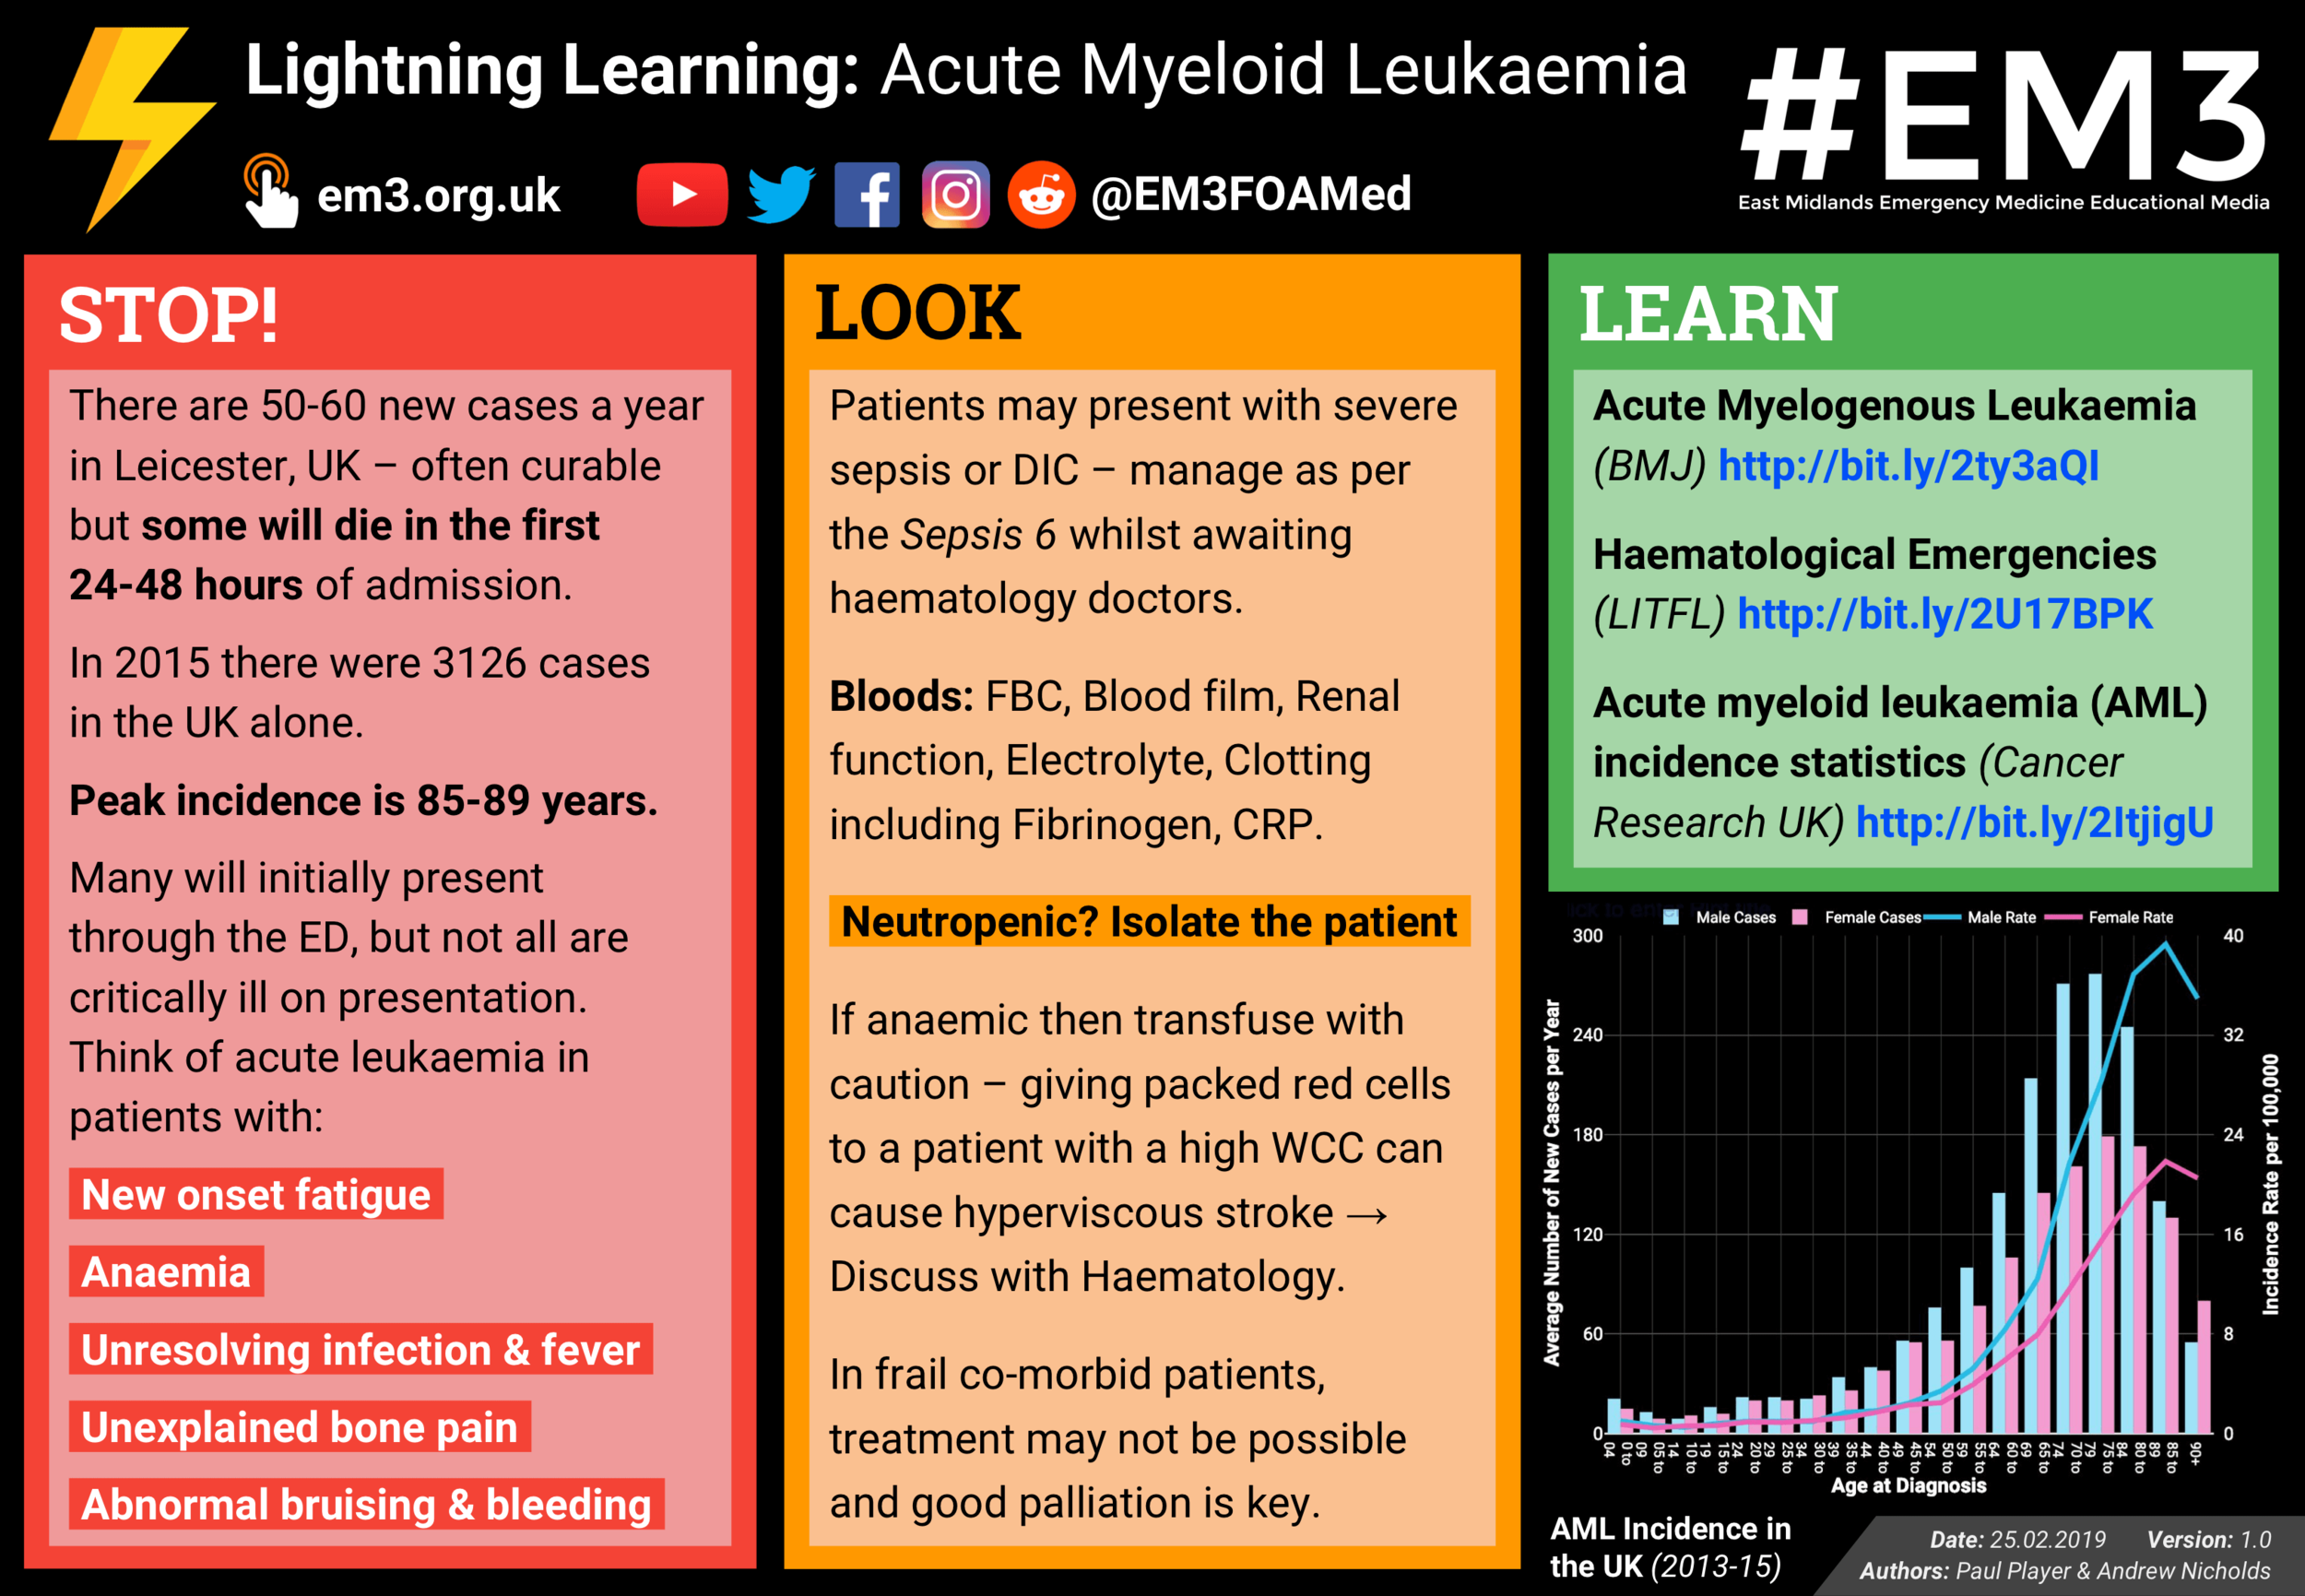 Lightning Learning: Acute Myeloid Leukaemia — #EM3: East